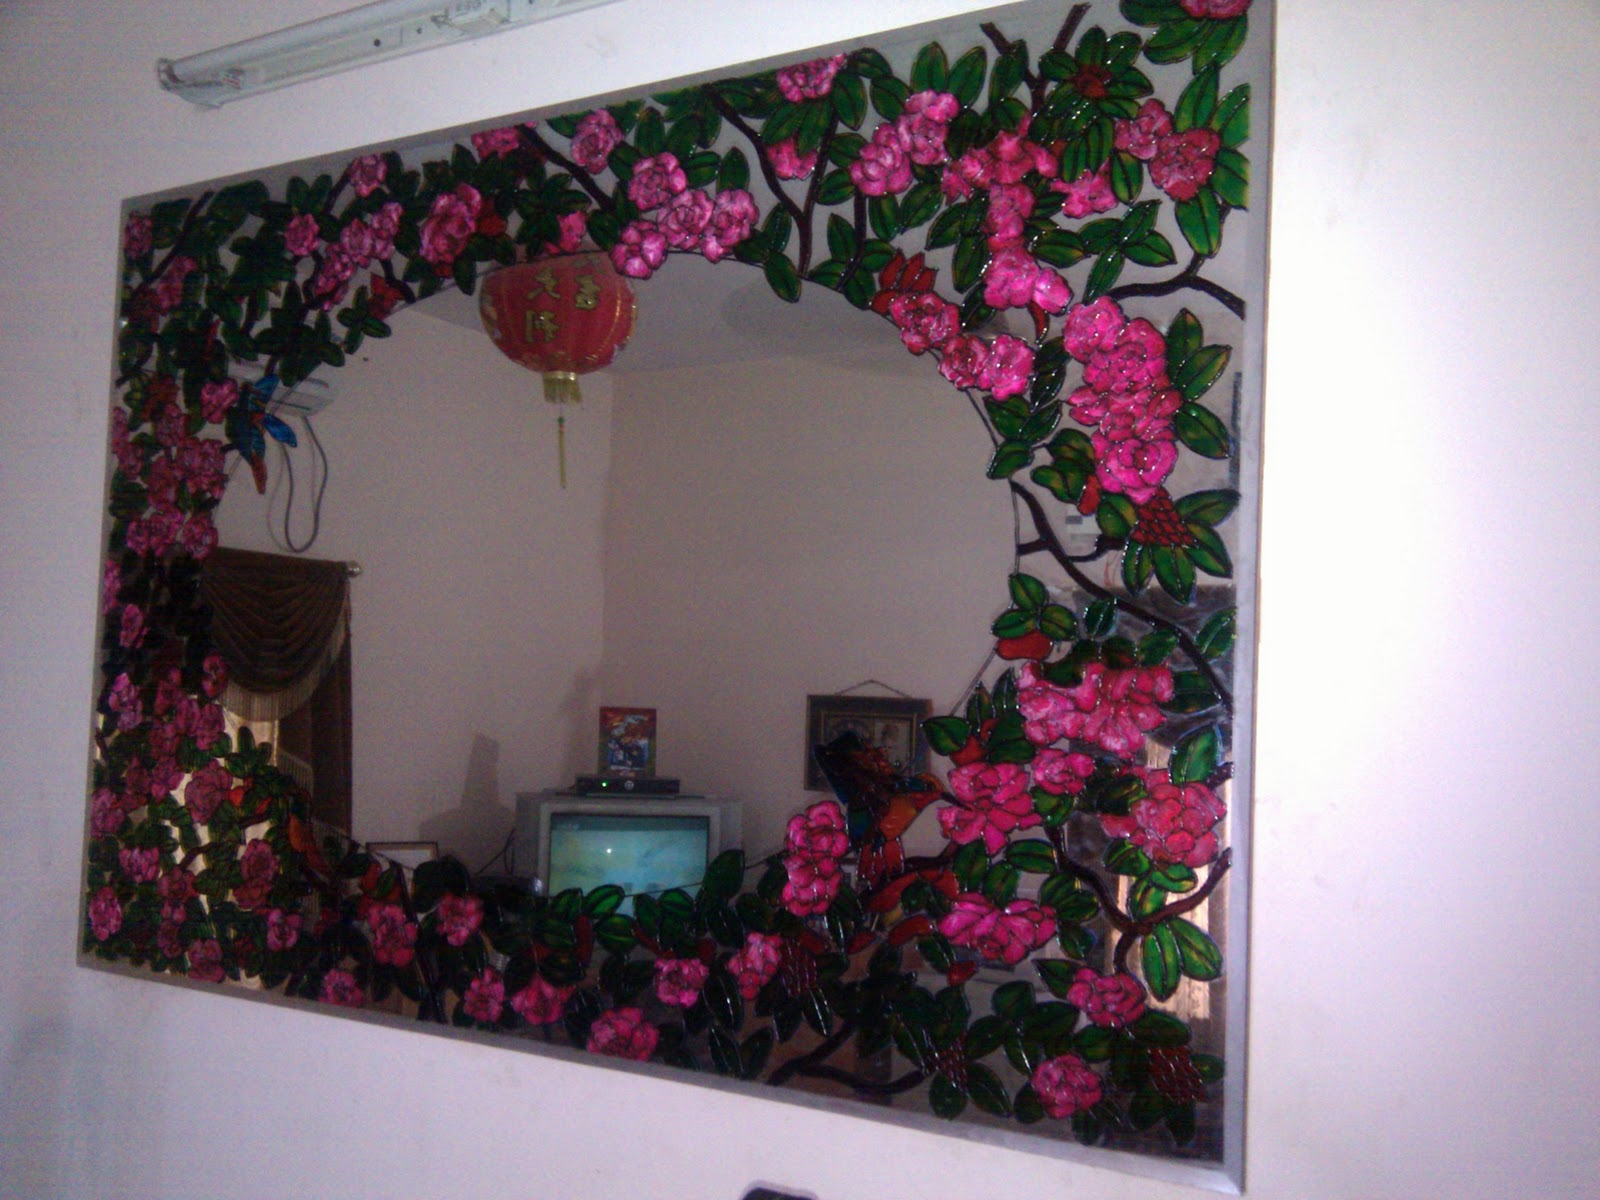 Mirrors zeeshcreation for Mirror glass design